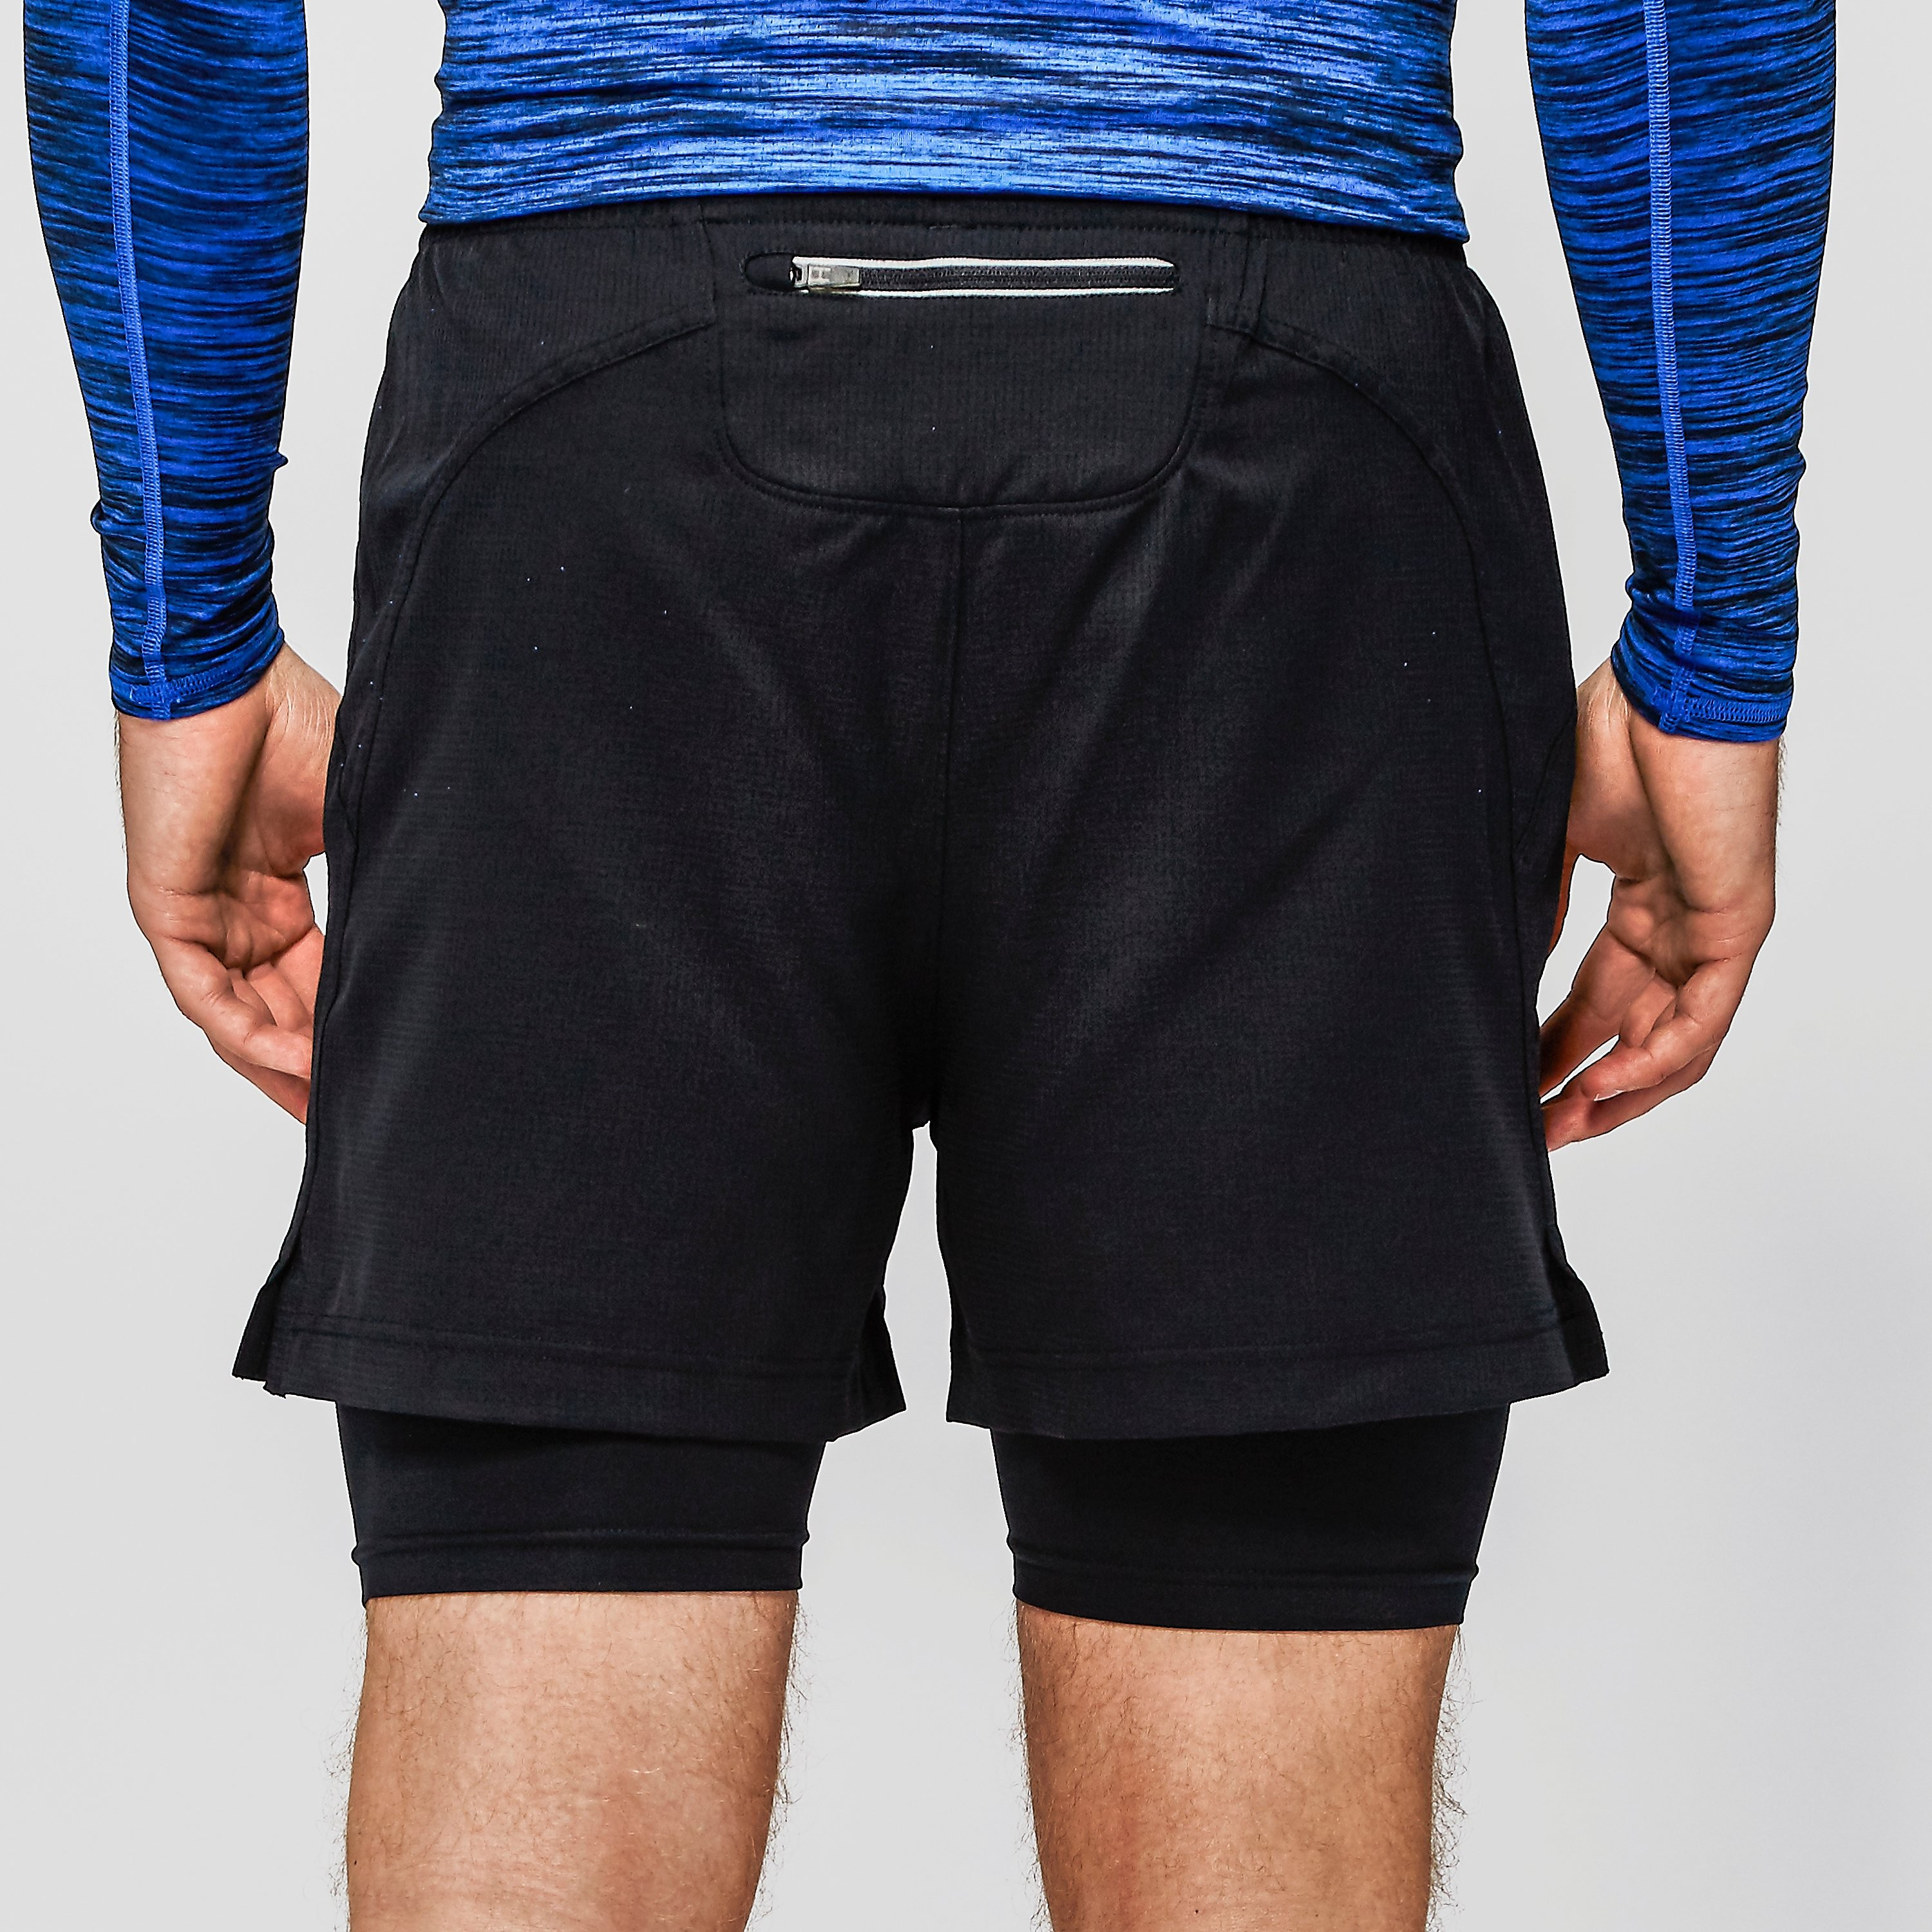 Under Armour UA Launch Racer 2-in-1 Men's Running Shorts